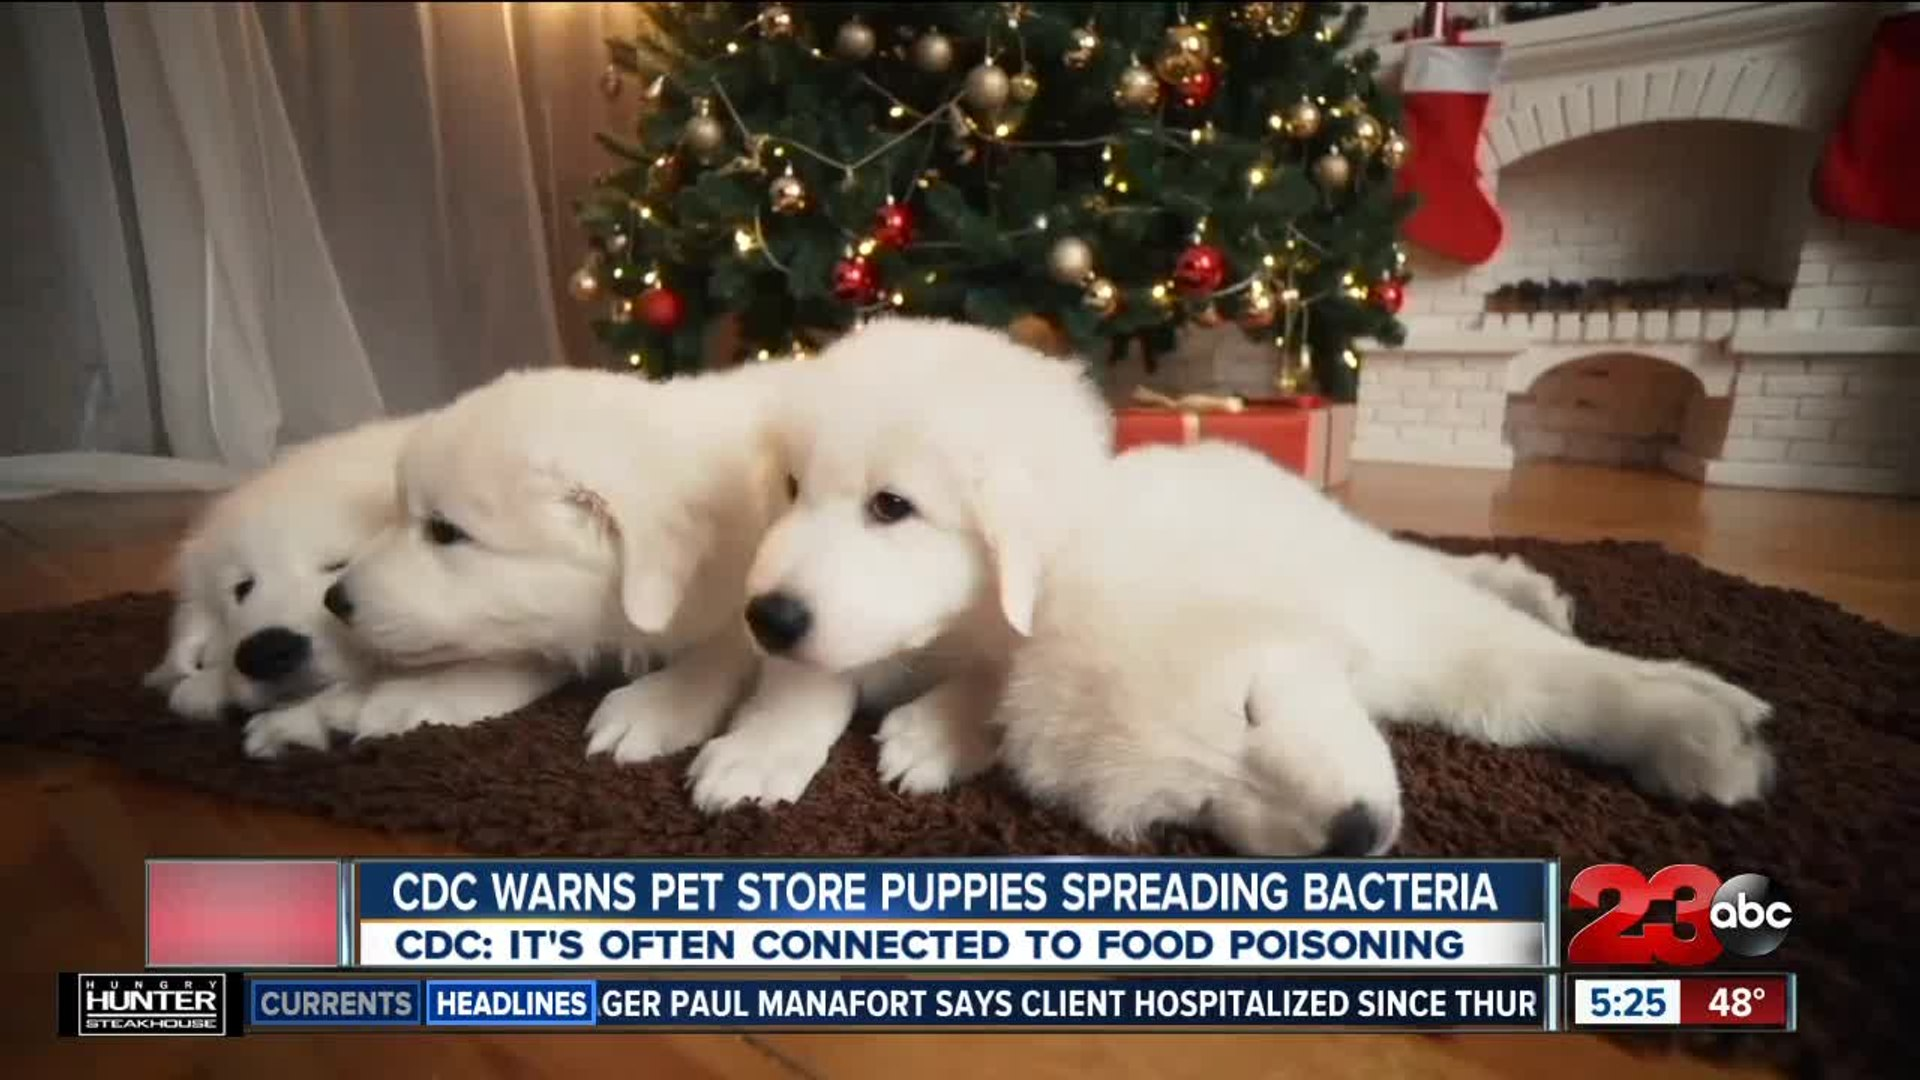 CDC warns pet store puppies spreading bacteria